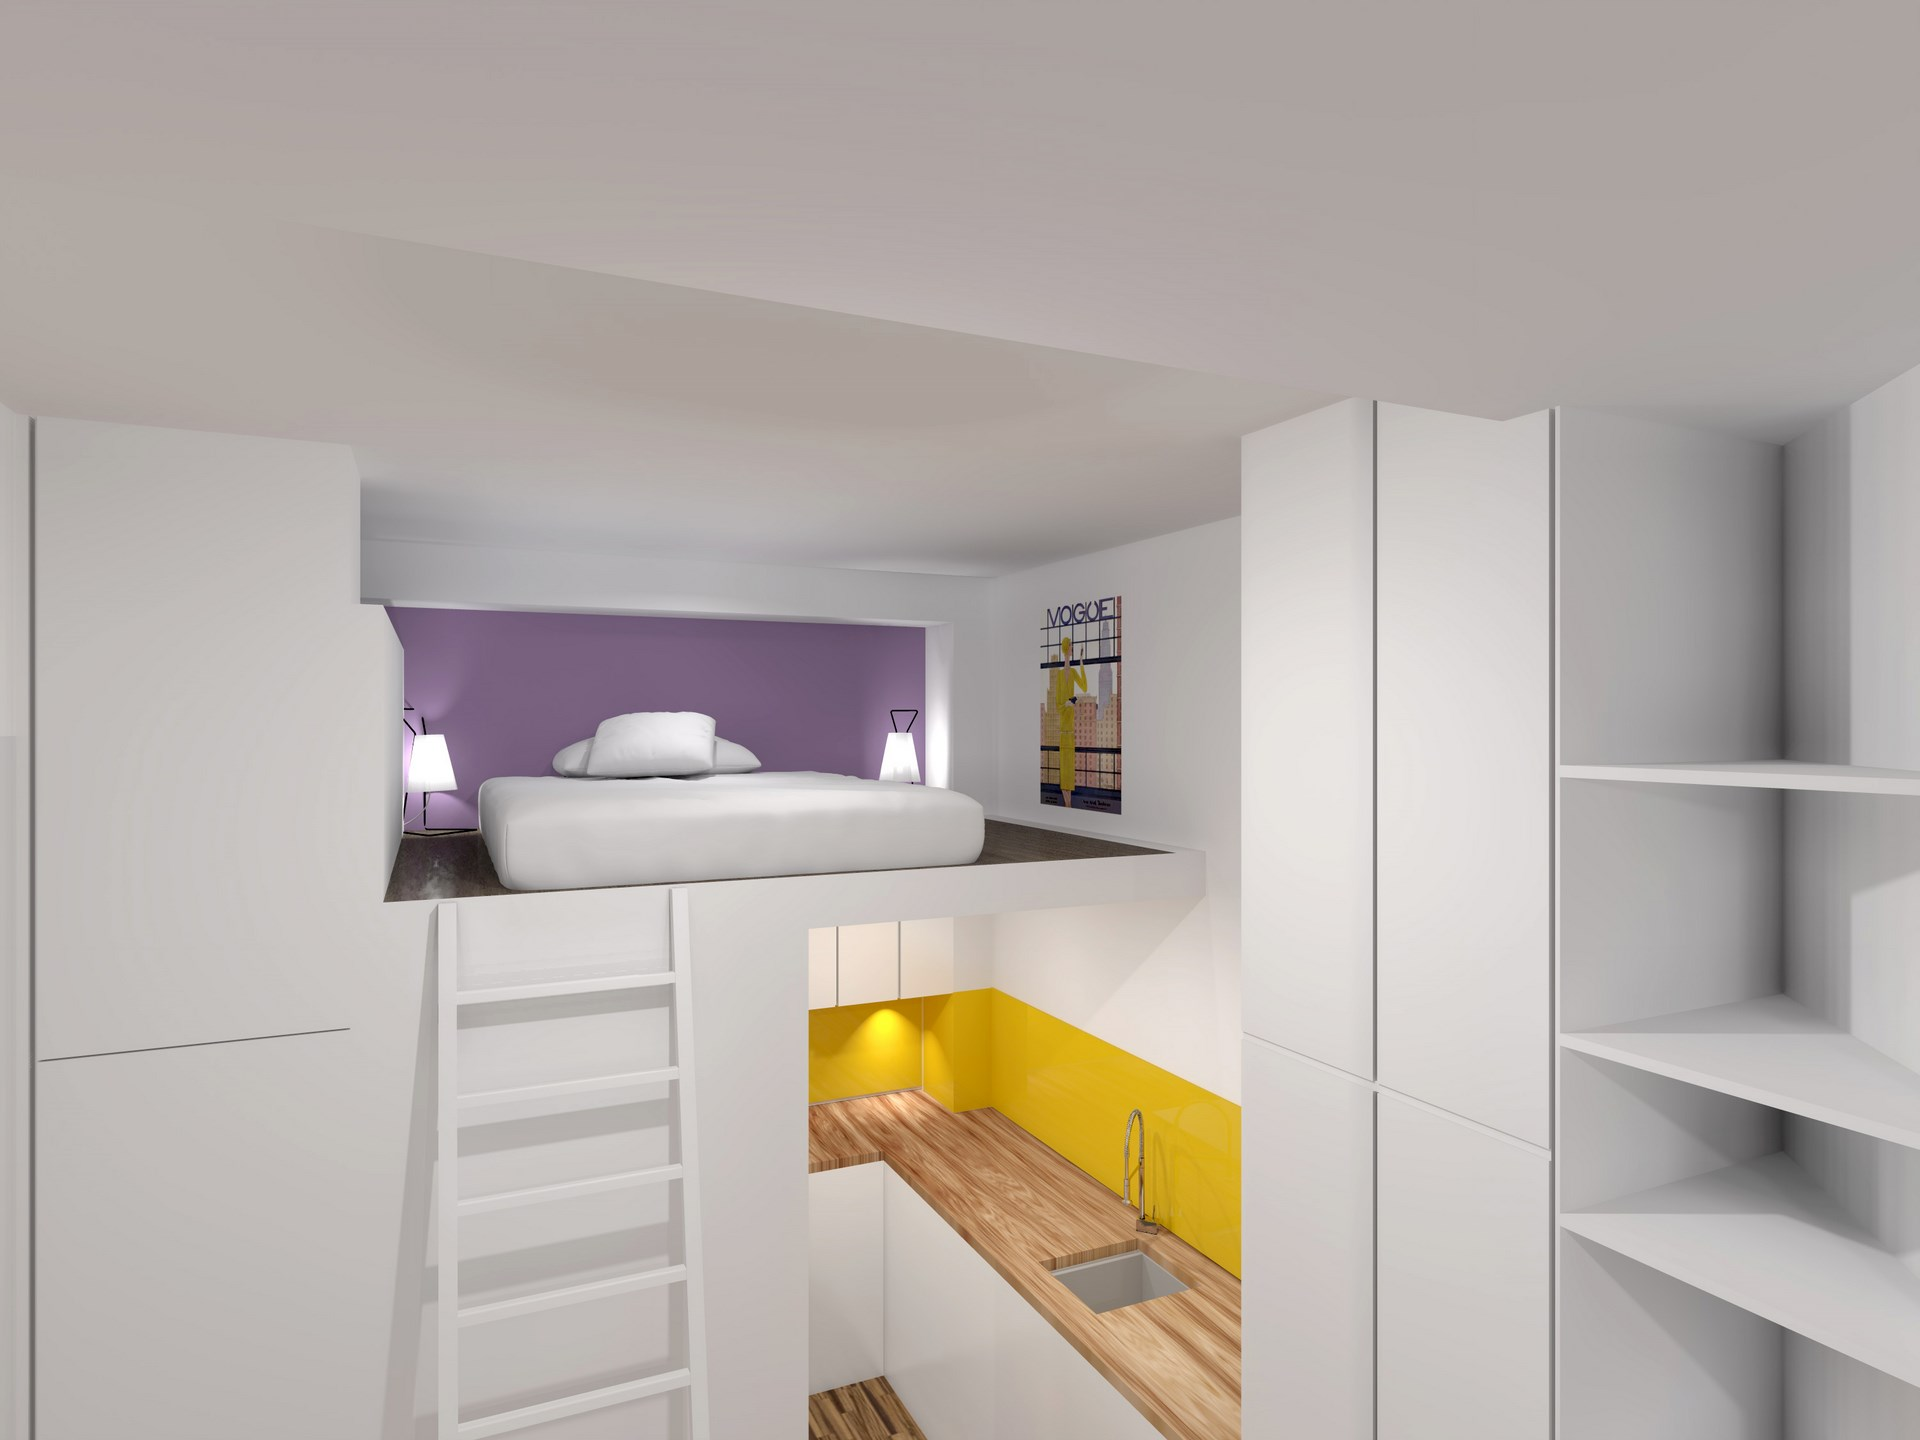 Ancienne loge de gardien transform e en studio mezzanine paris 11 me - Cuisine amenagement ...